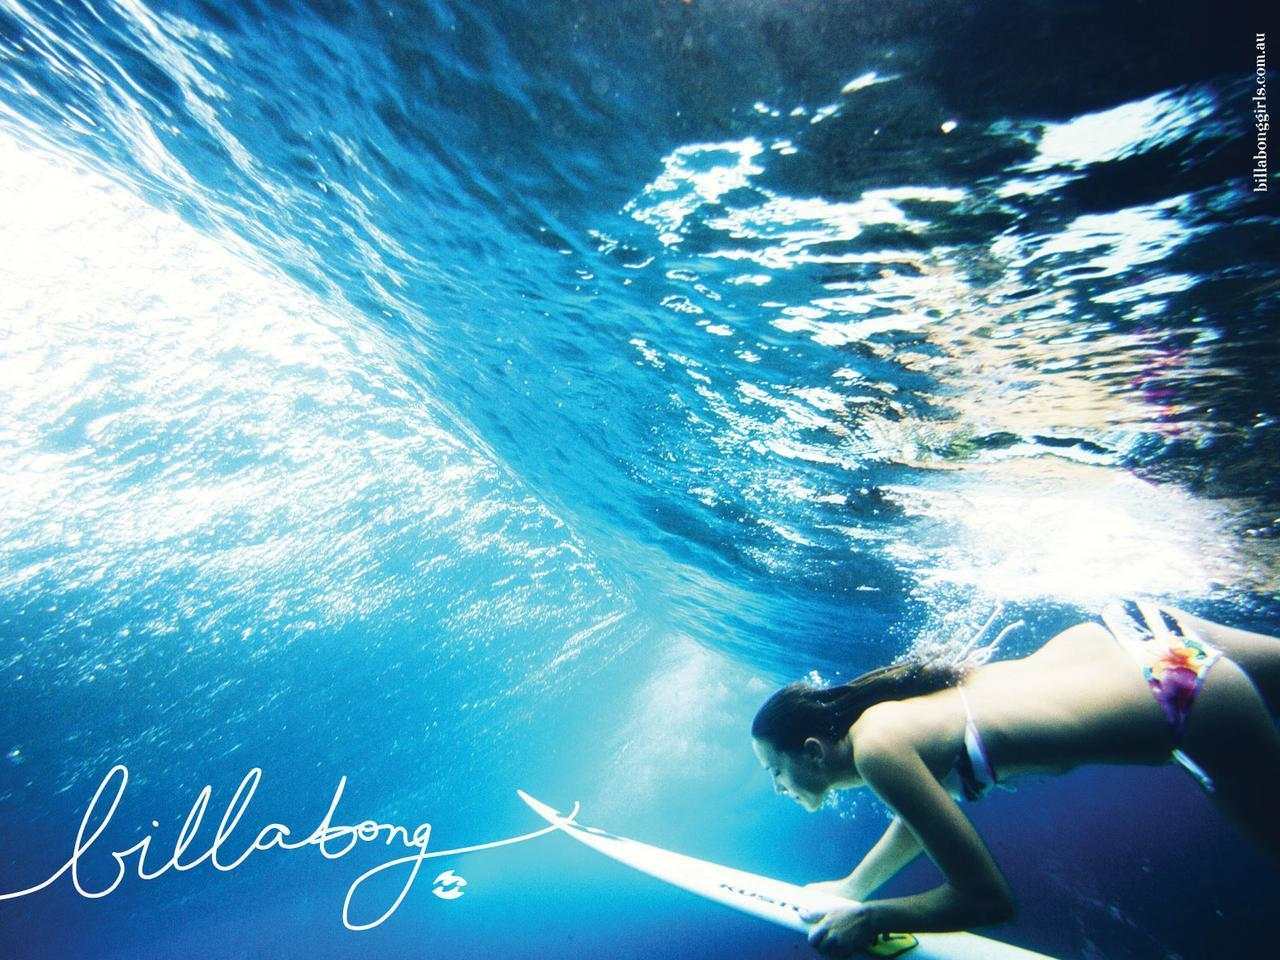 Billabong Girls Surfing 1280x960